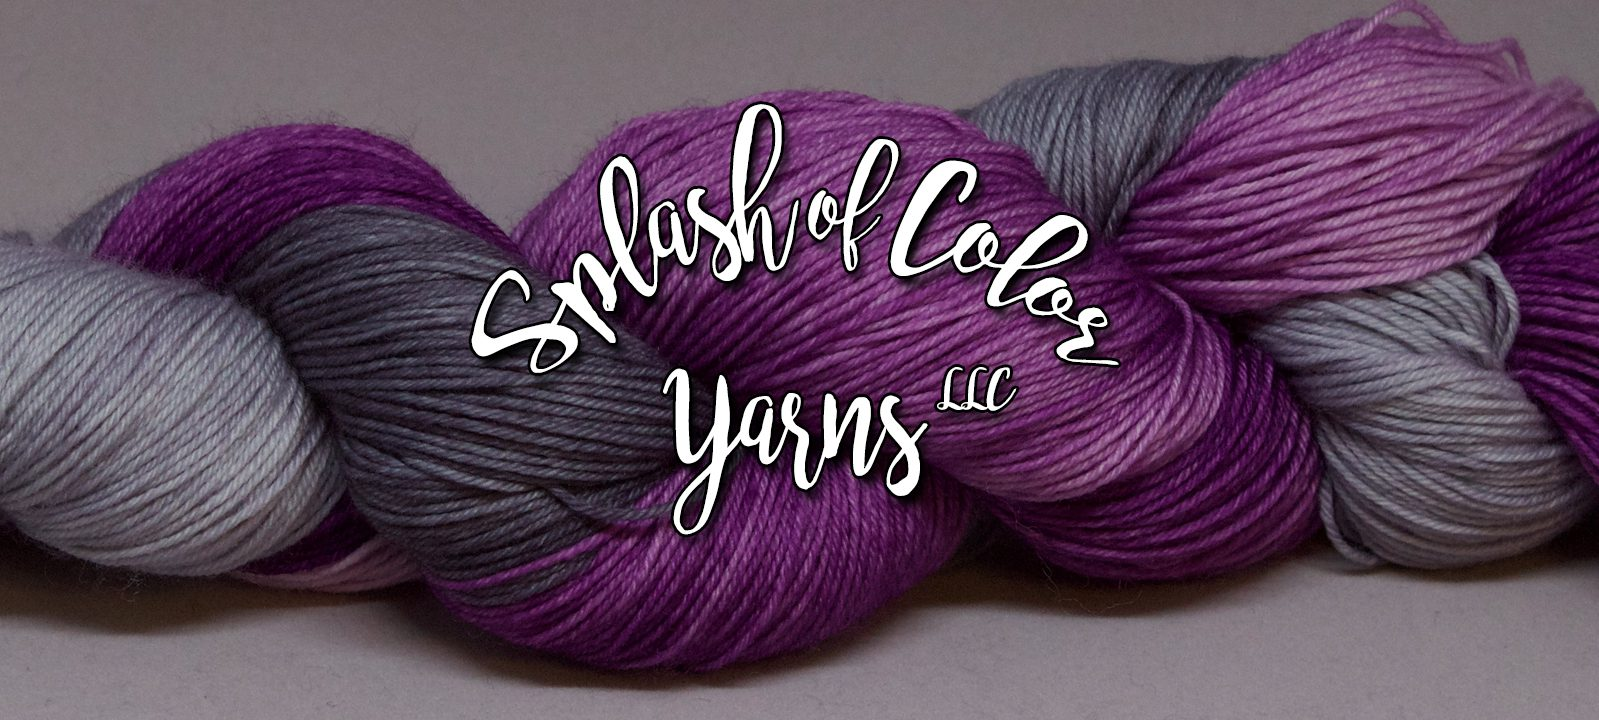 Splash of Color Yarns, LLC